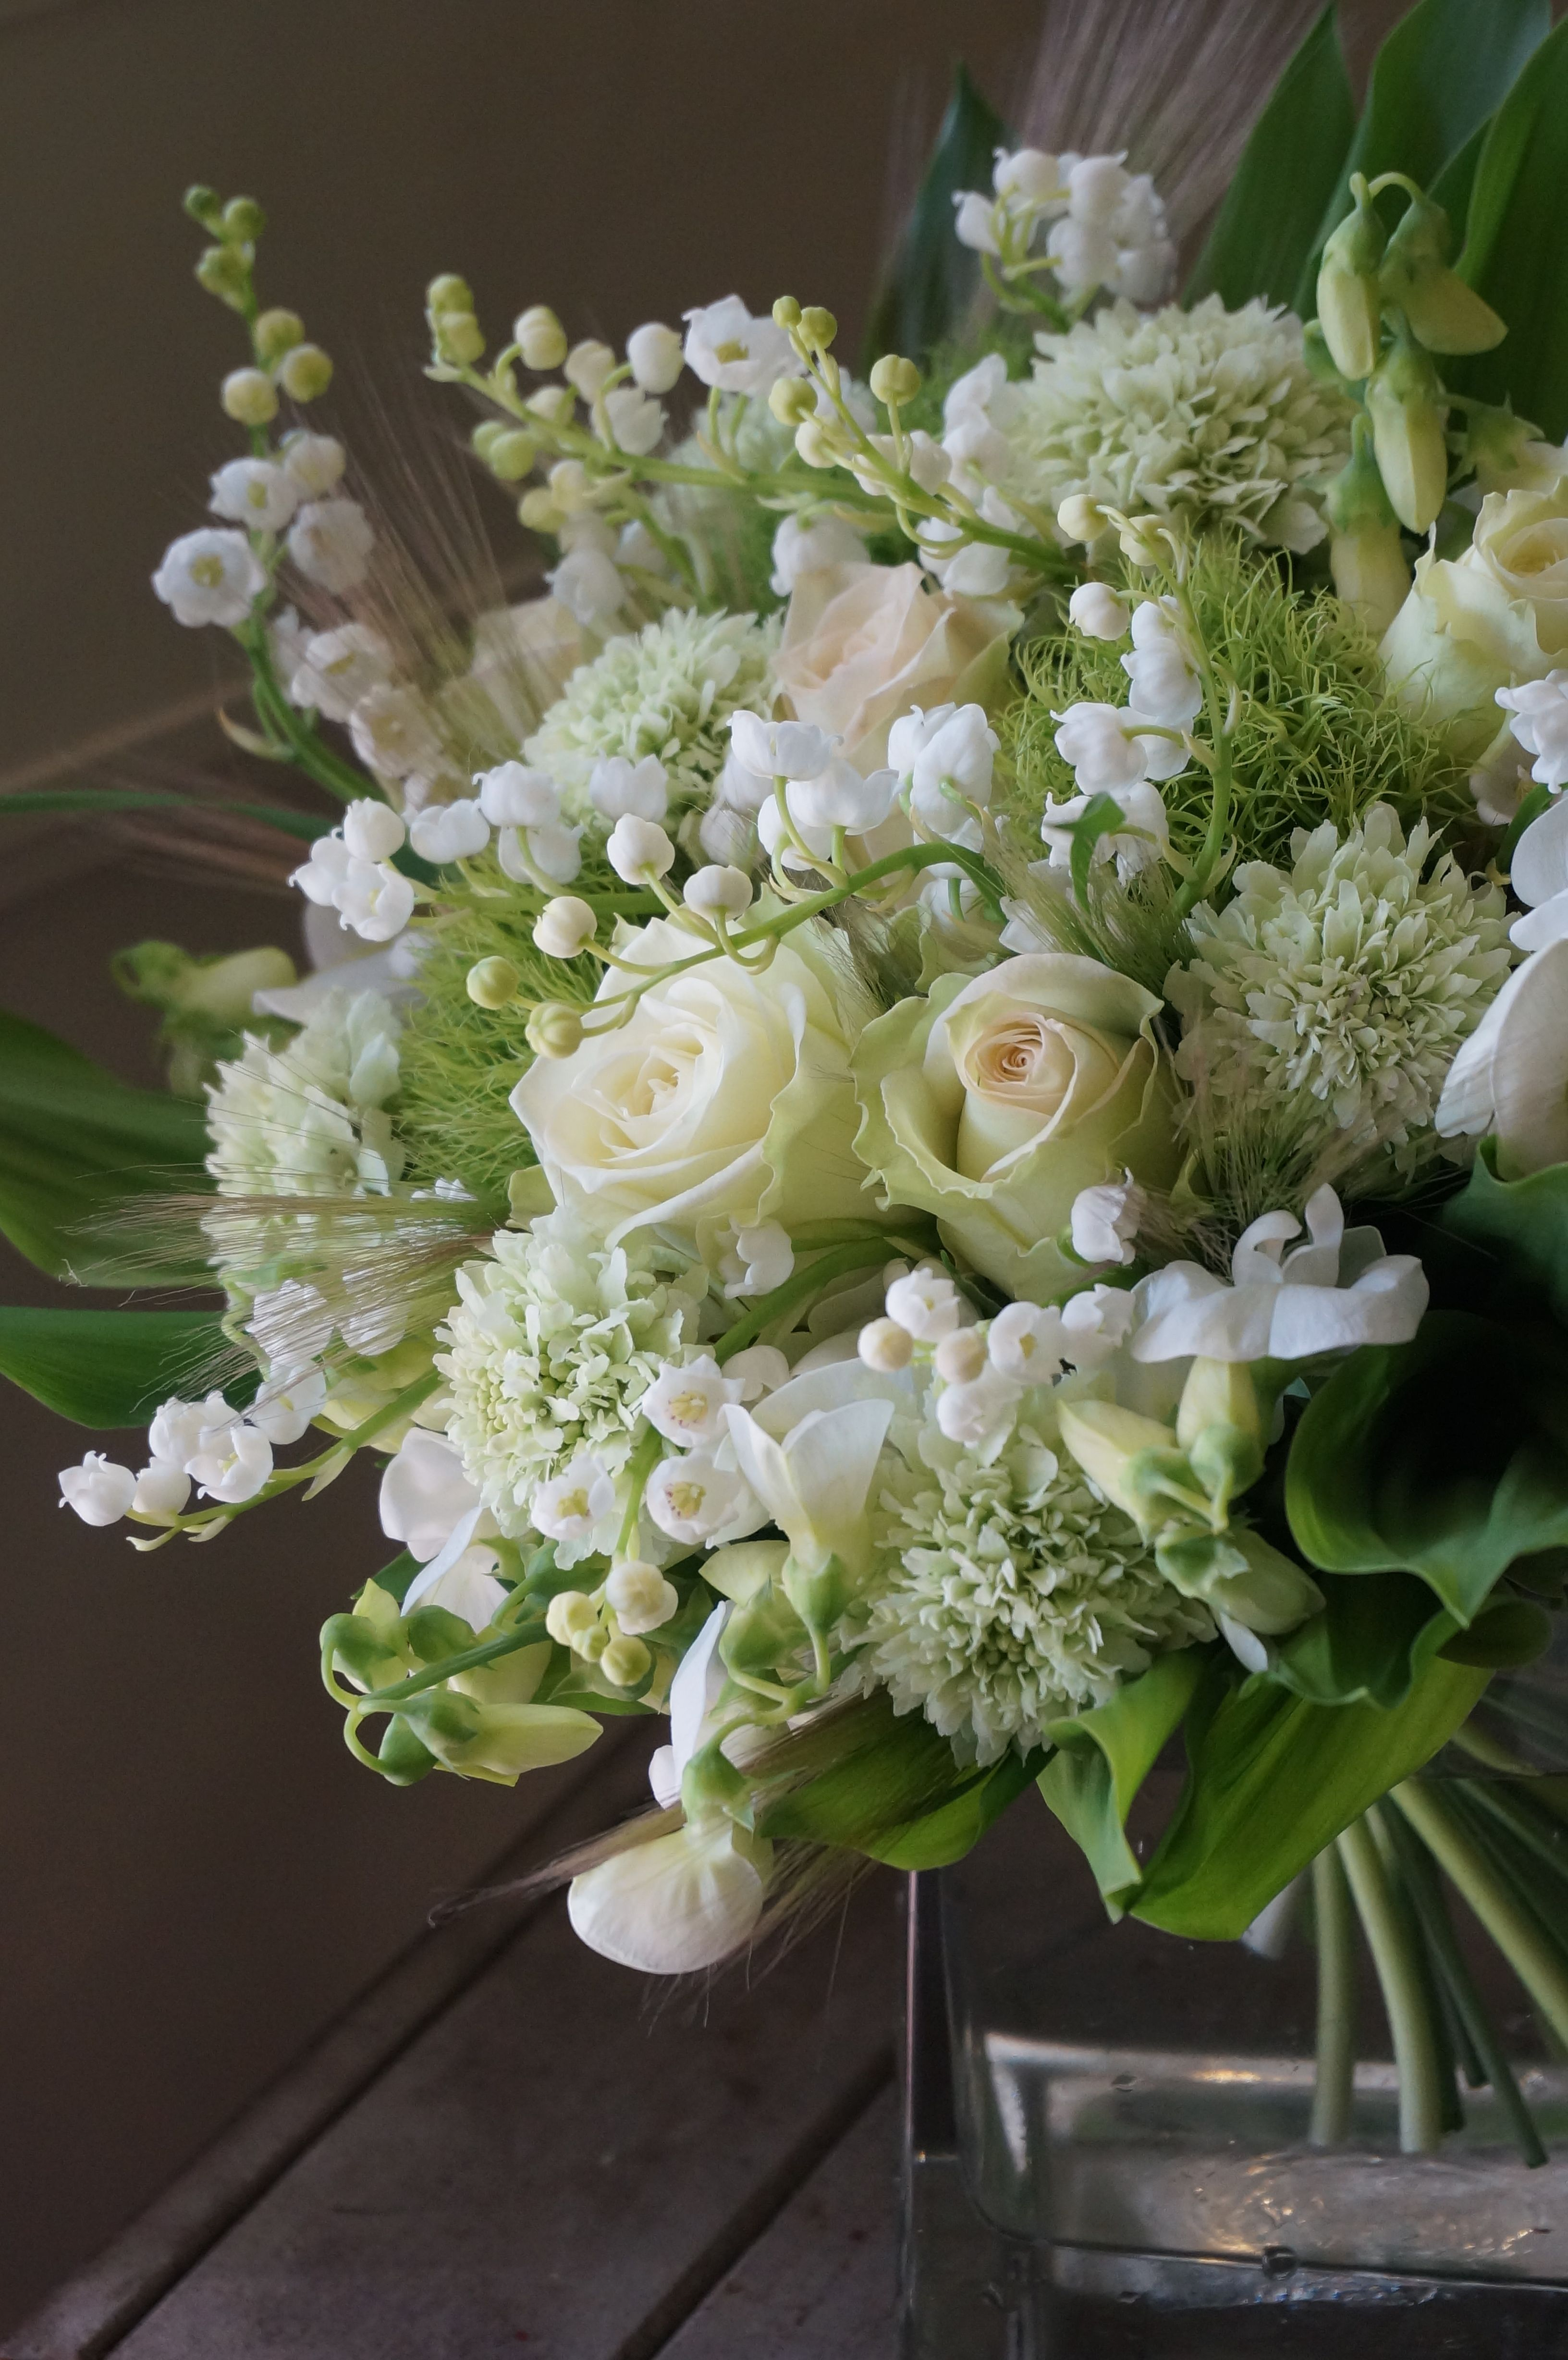 It's today: 1 st. of May, so want to send to all beautiful friends on this board created by our sweet friend ☼♪♥ DONNA ♥♪☼, a bouquet of white Roses and Lily of the Valley with a little song. Wishing you all a wonderful month of May with Love and Happiness ☼☺♪♥ :)  https://www.youtube.com/watch?v=ca4Z2TrNHQQ